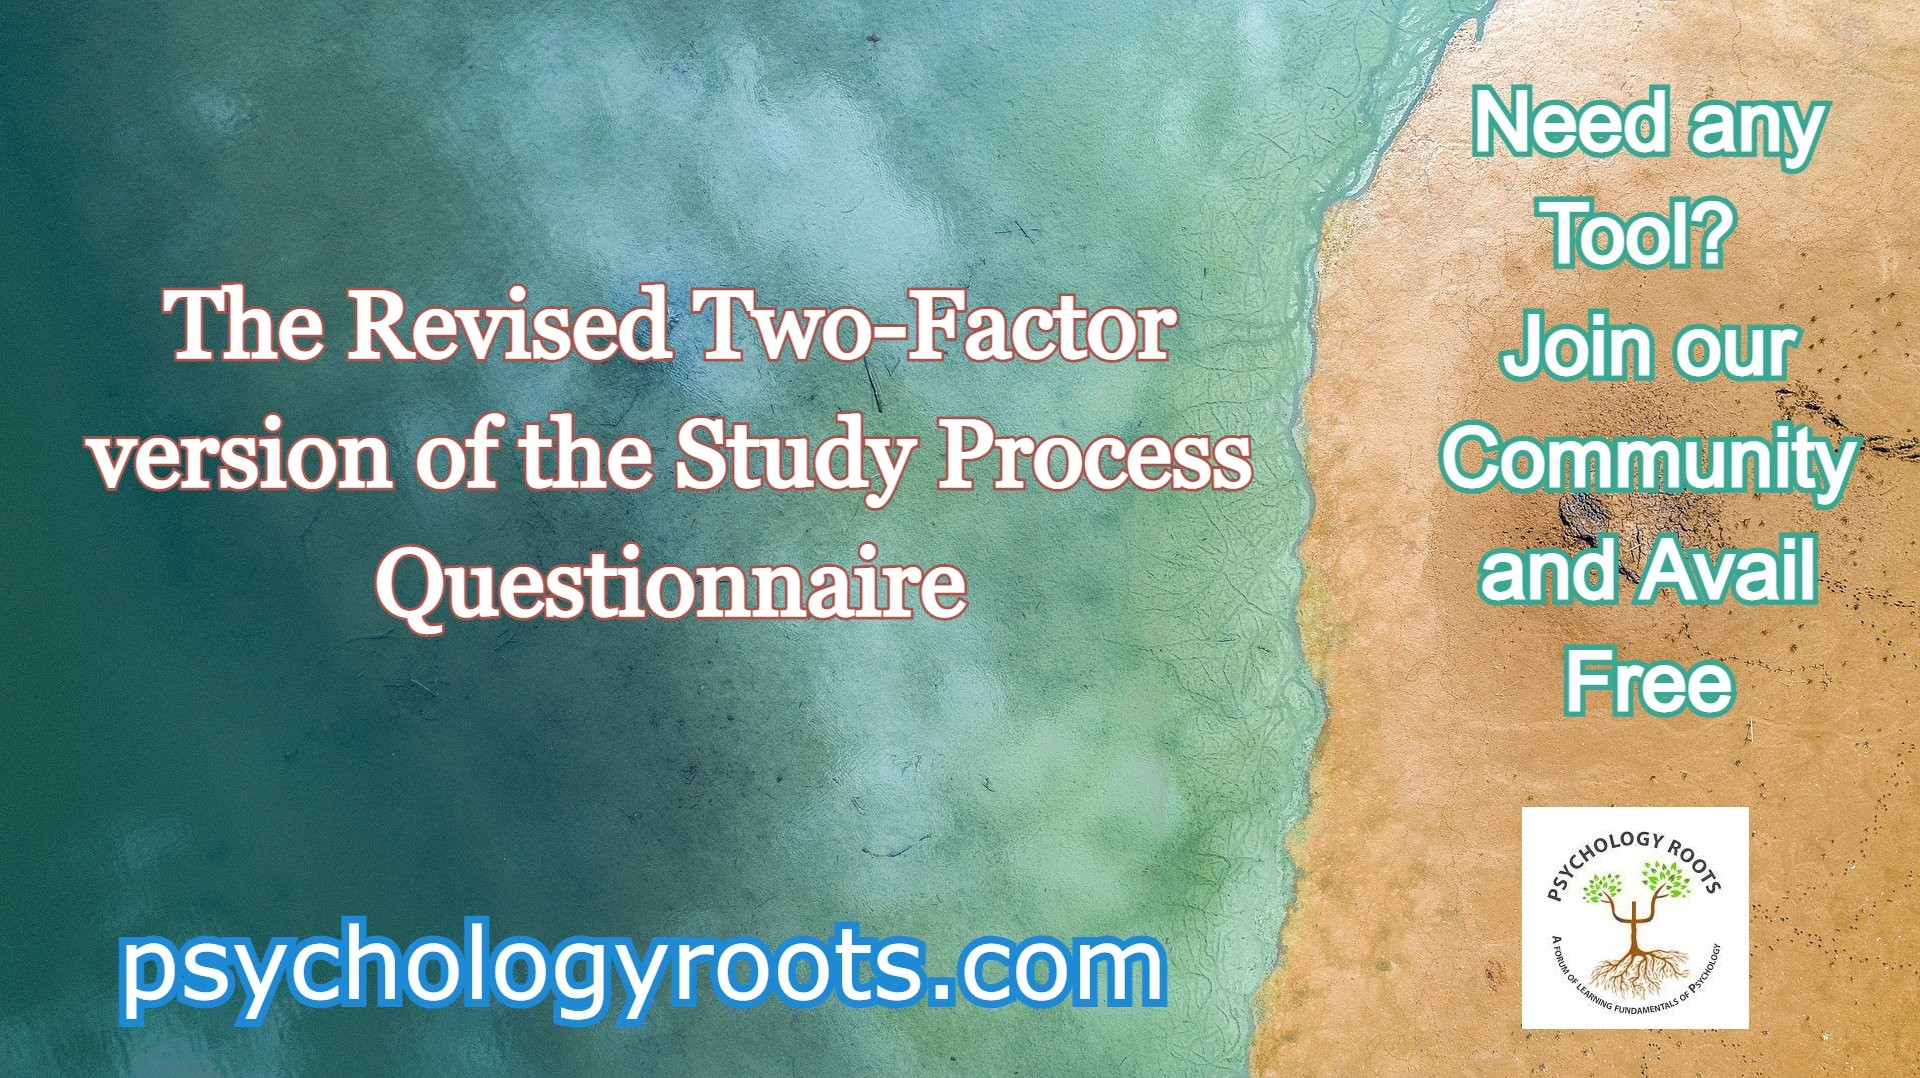 The Revised Two-Factor version of the Study Process Questionnaire